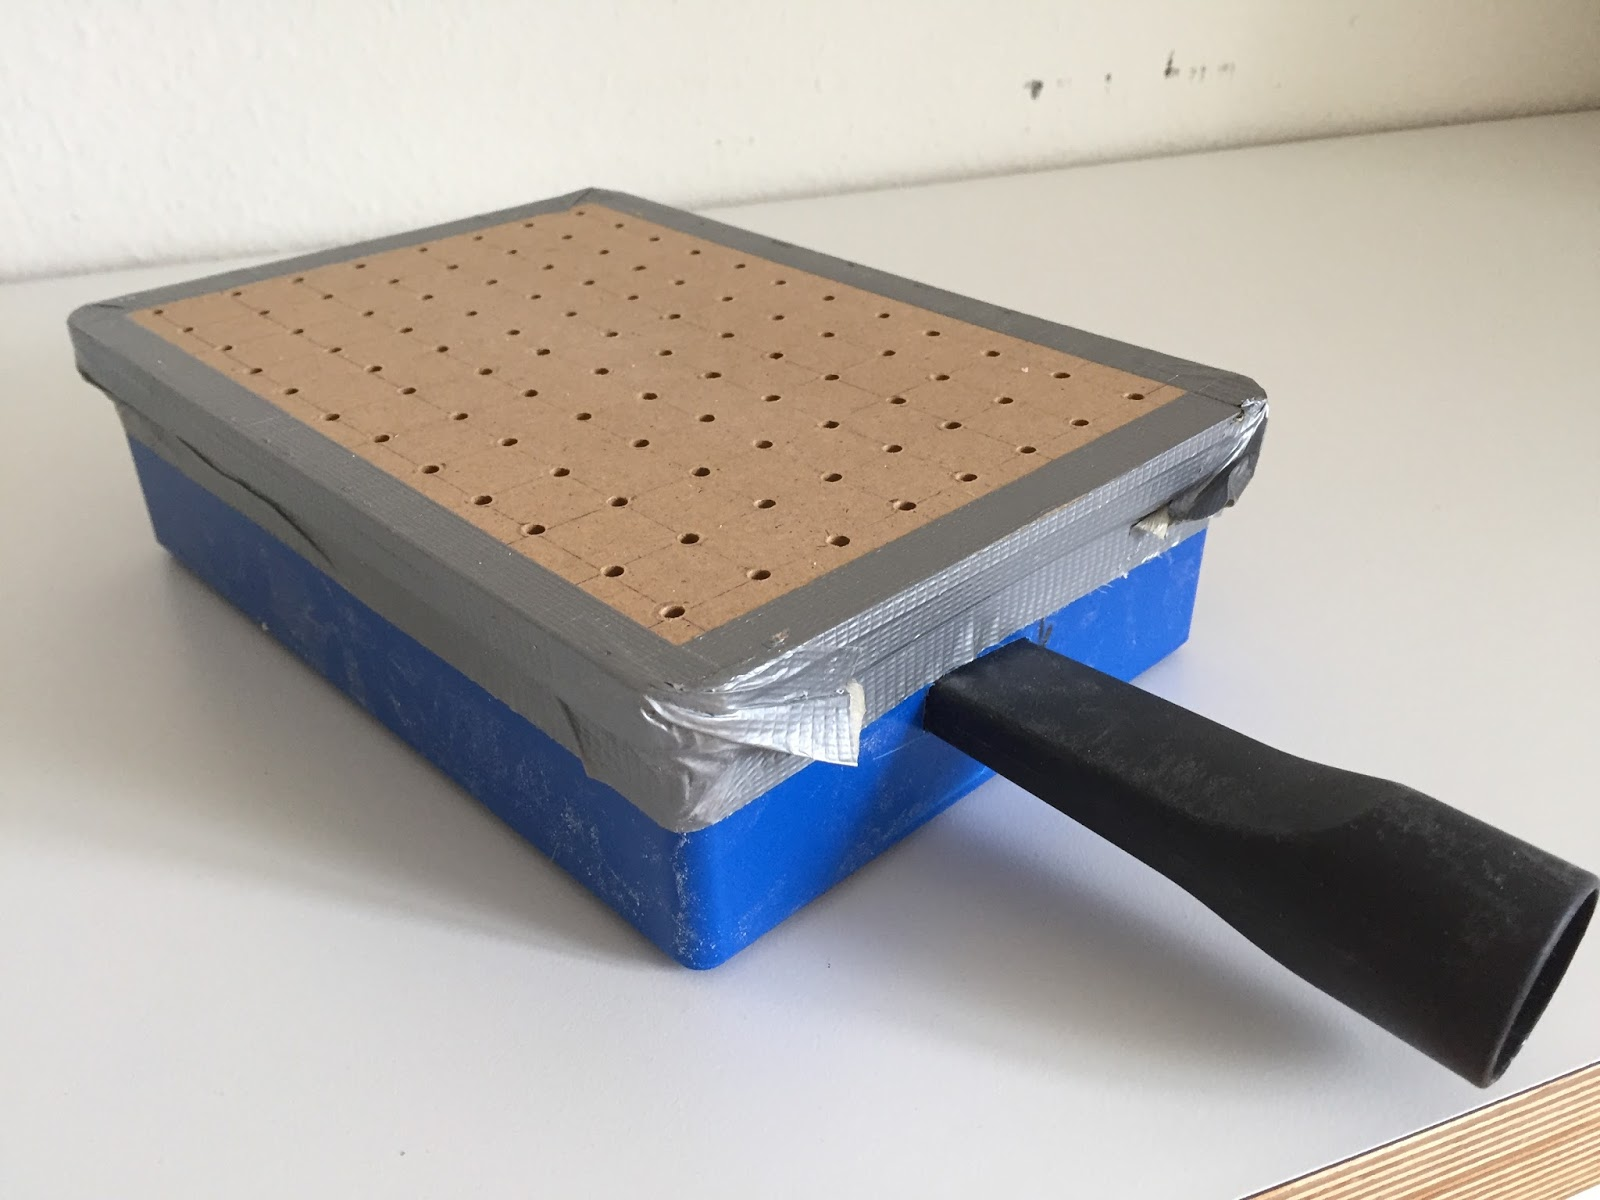 First I Made The Vacuum Box Using A Plastic Hole Big Enough For Sucker And Closed With Wood Plenty Of Wholes In It